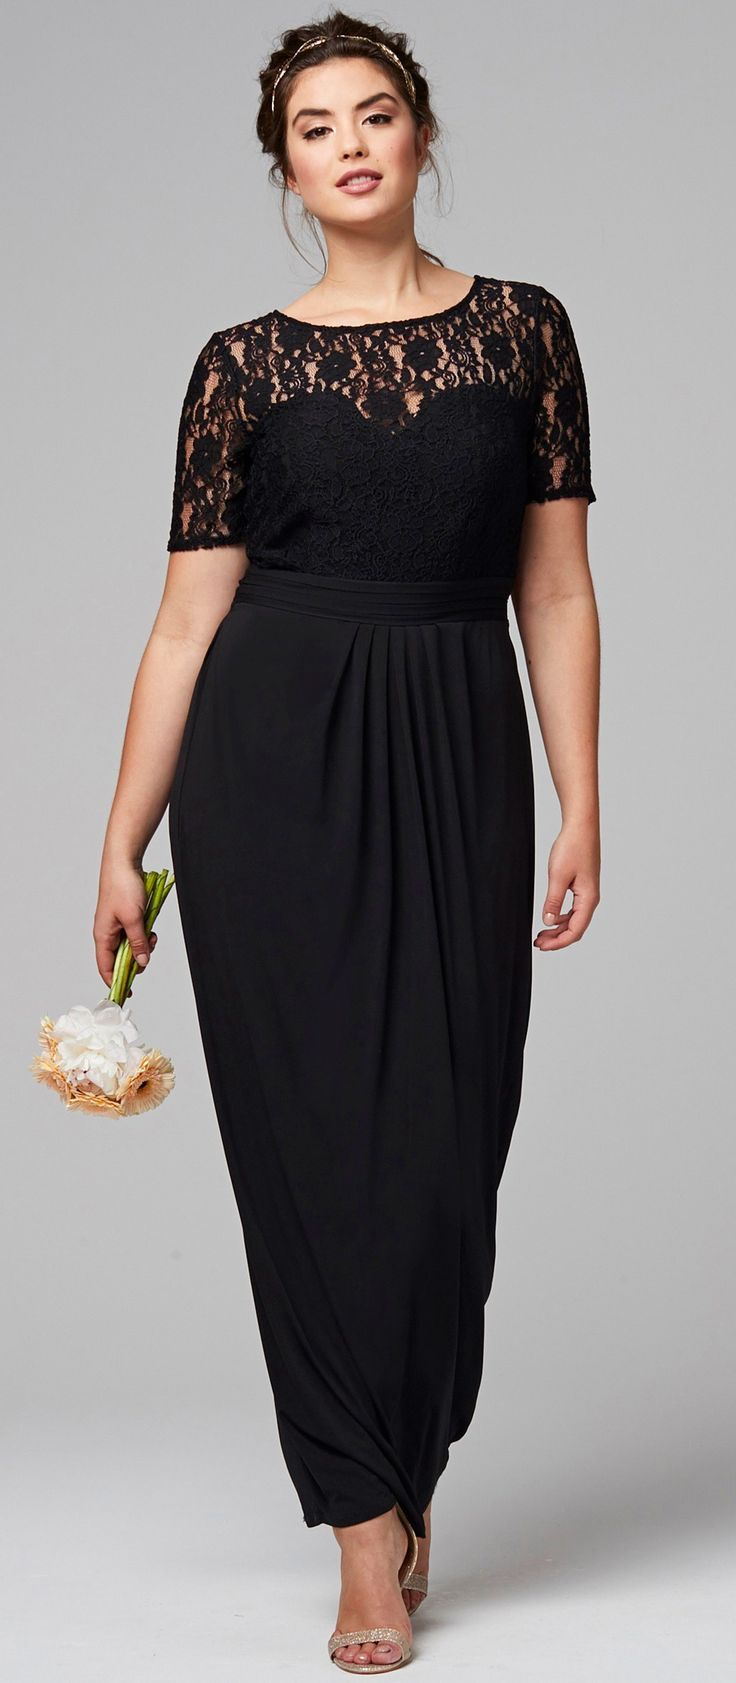 45 plus size wedding guest dresses with sleeves  wedding